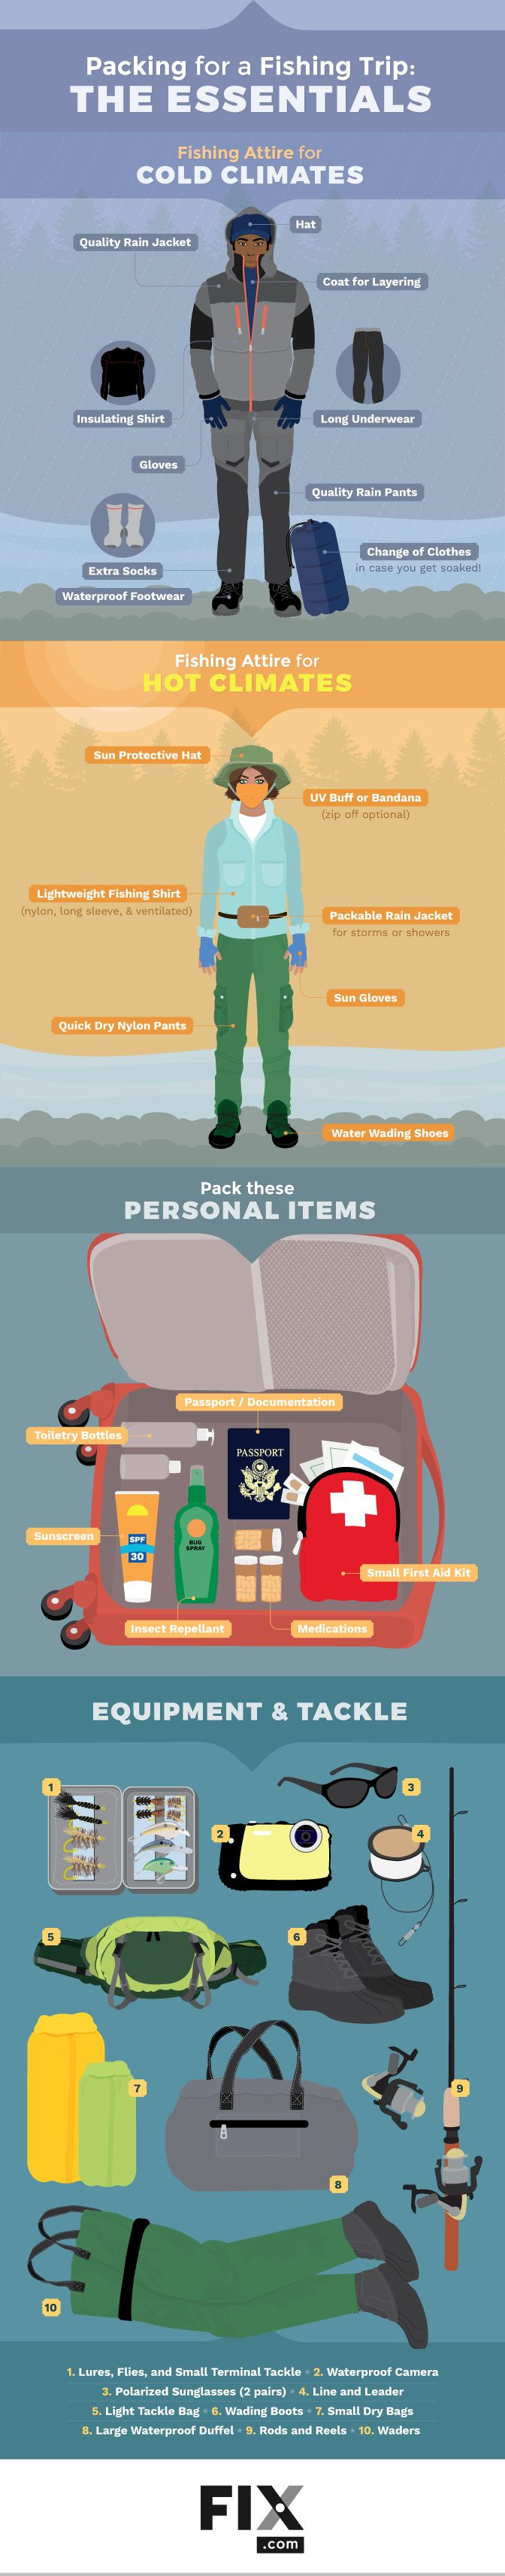 Pack for a fishing trip? Use our list as a guide!